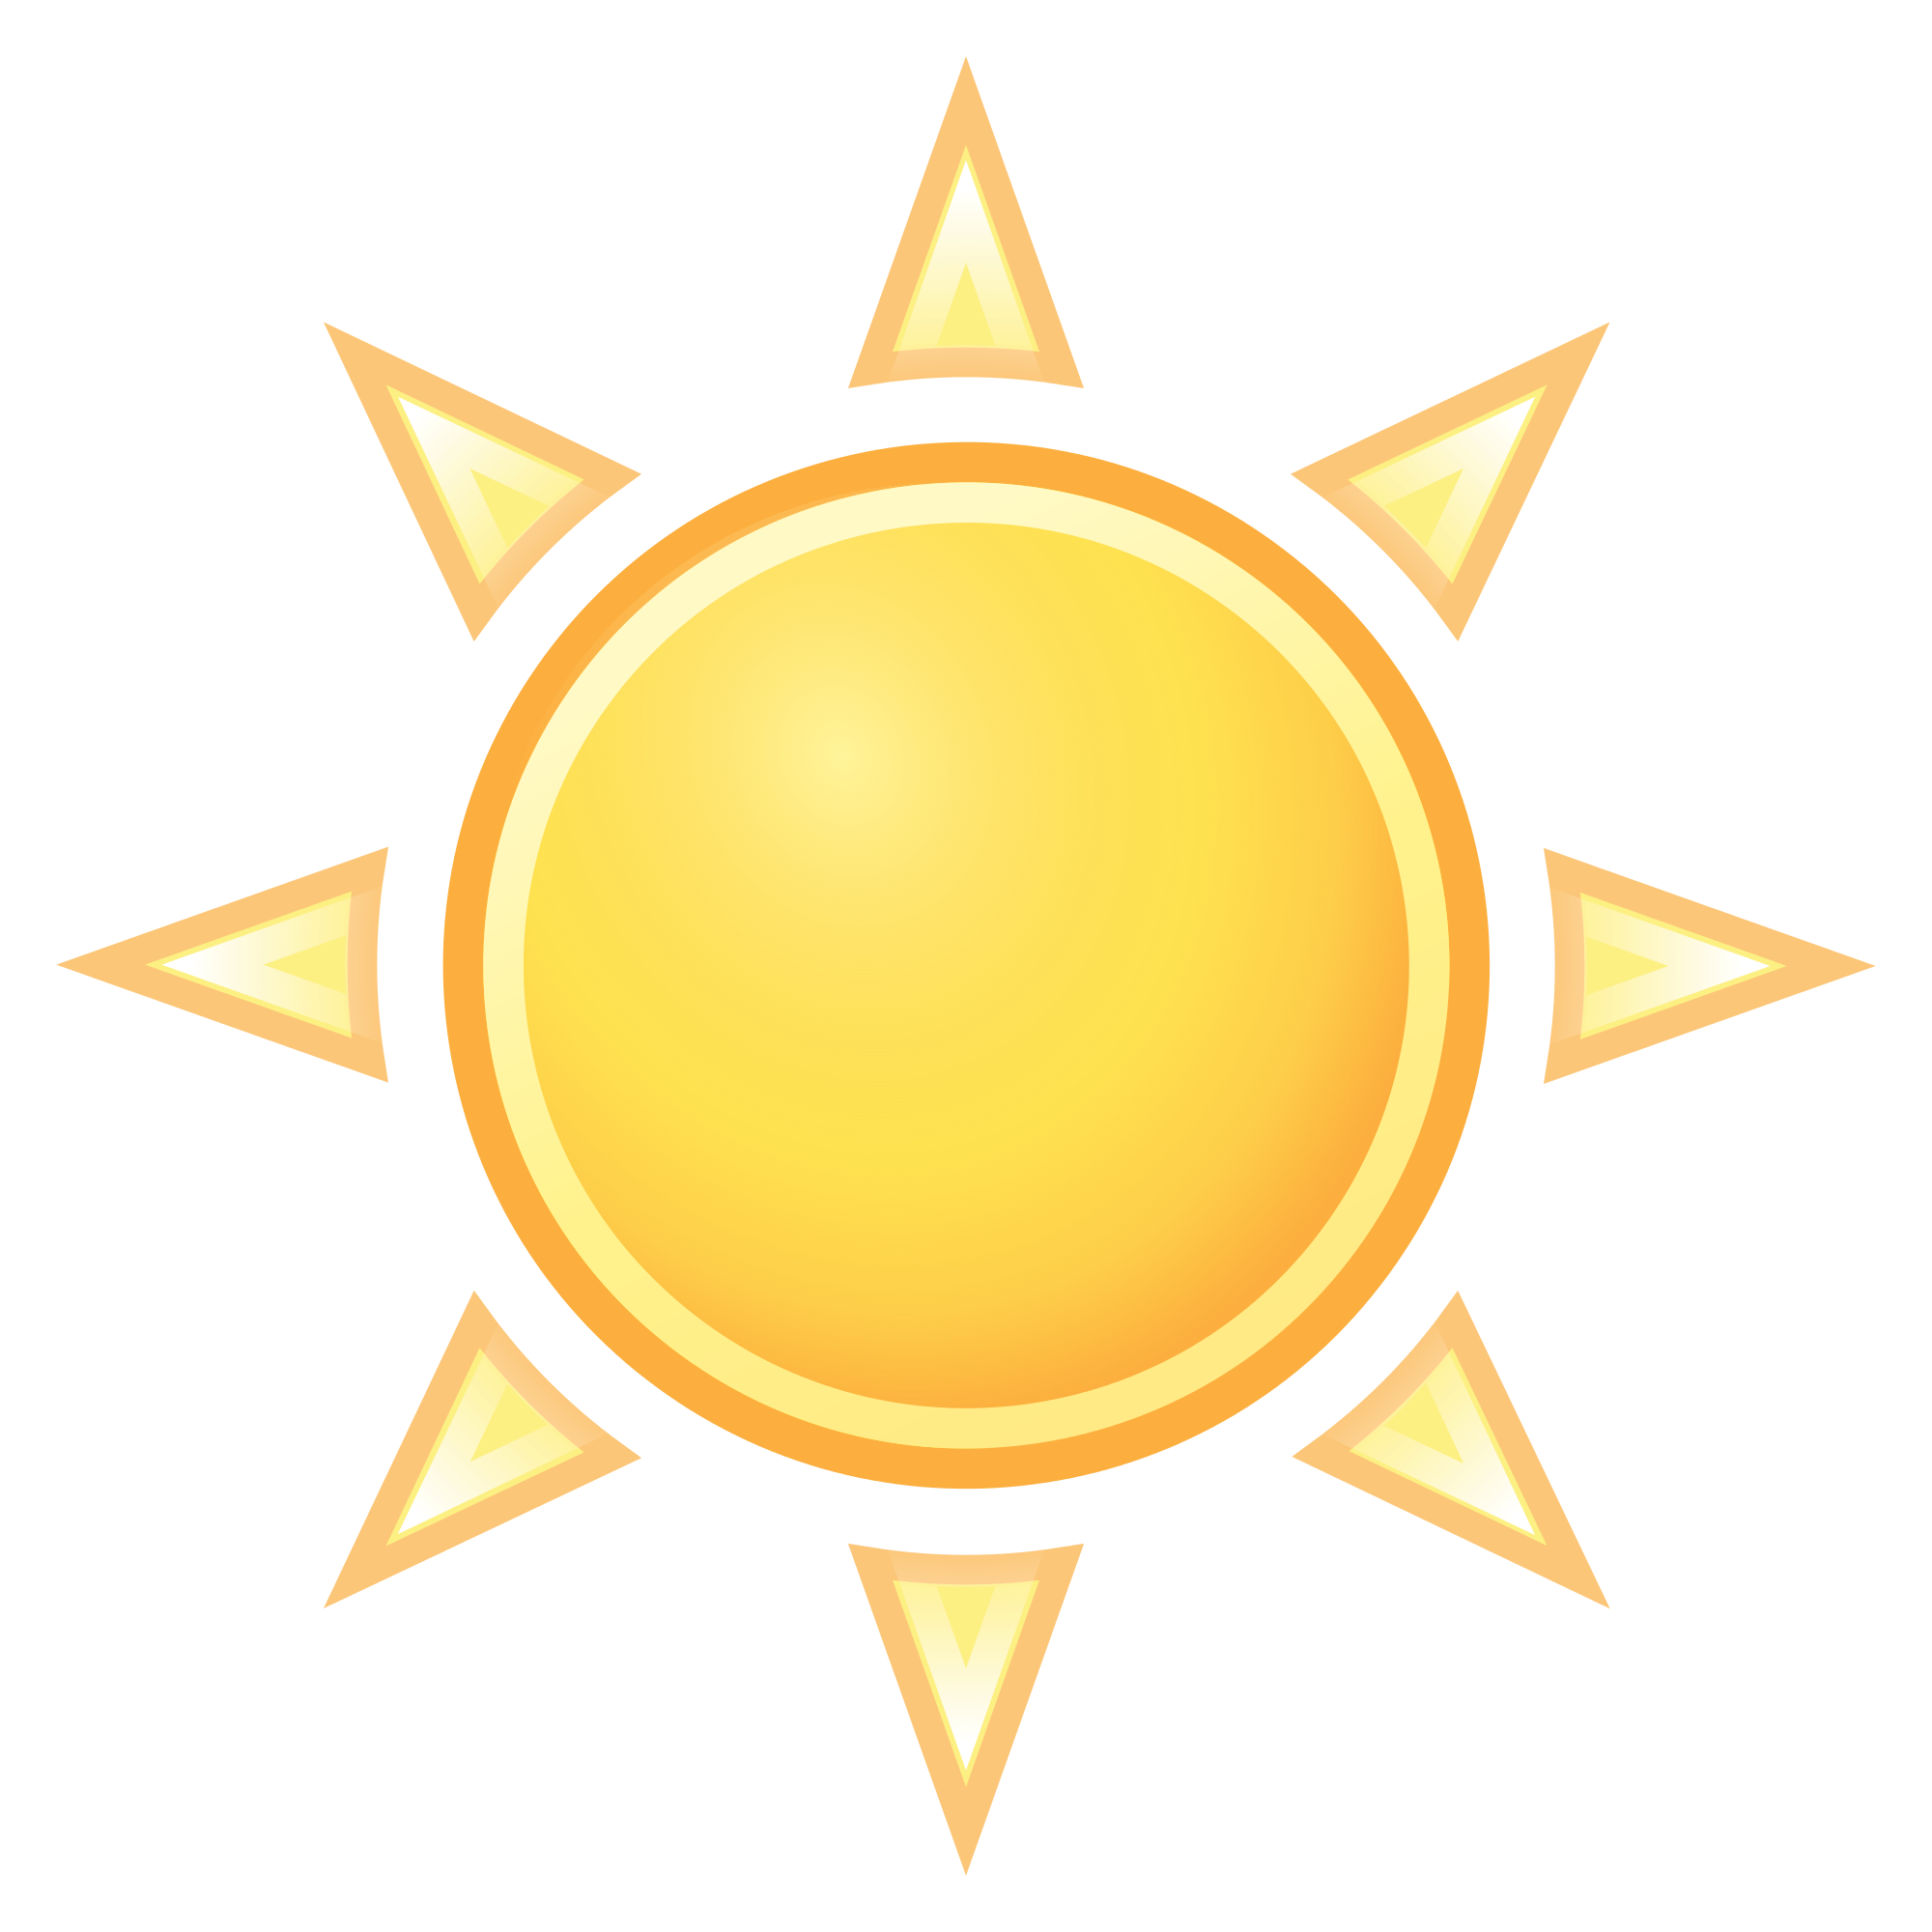 Weather sun clipart jpg free library Heat Warning - September 25, 2017 - My Bancroft Now jpg free library